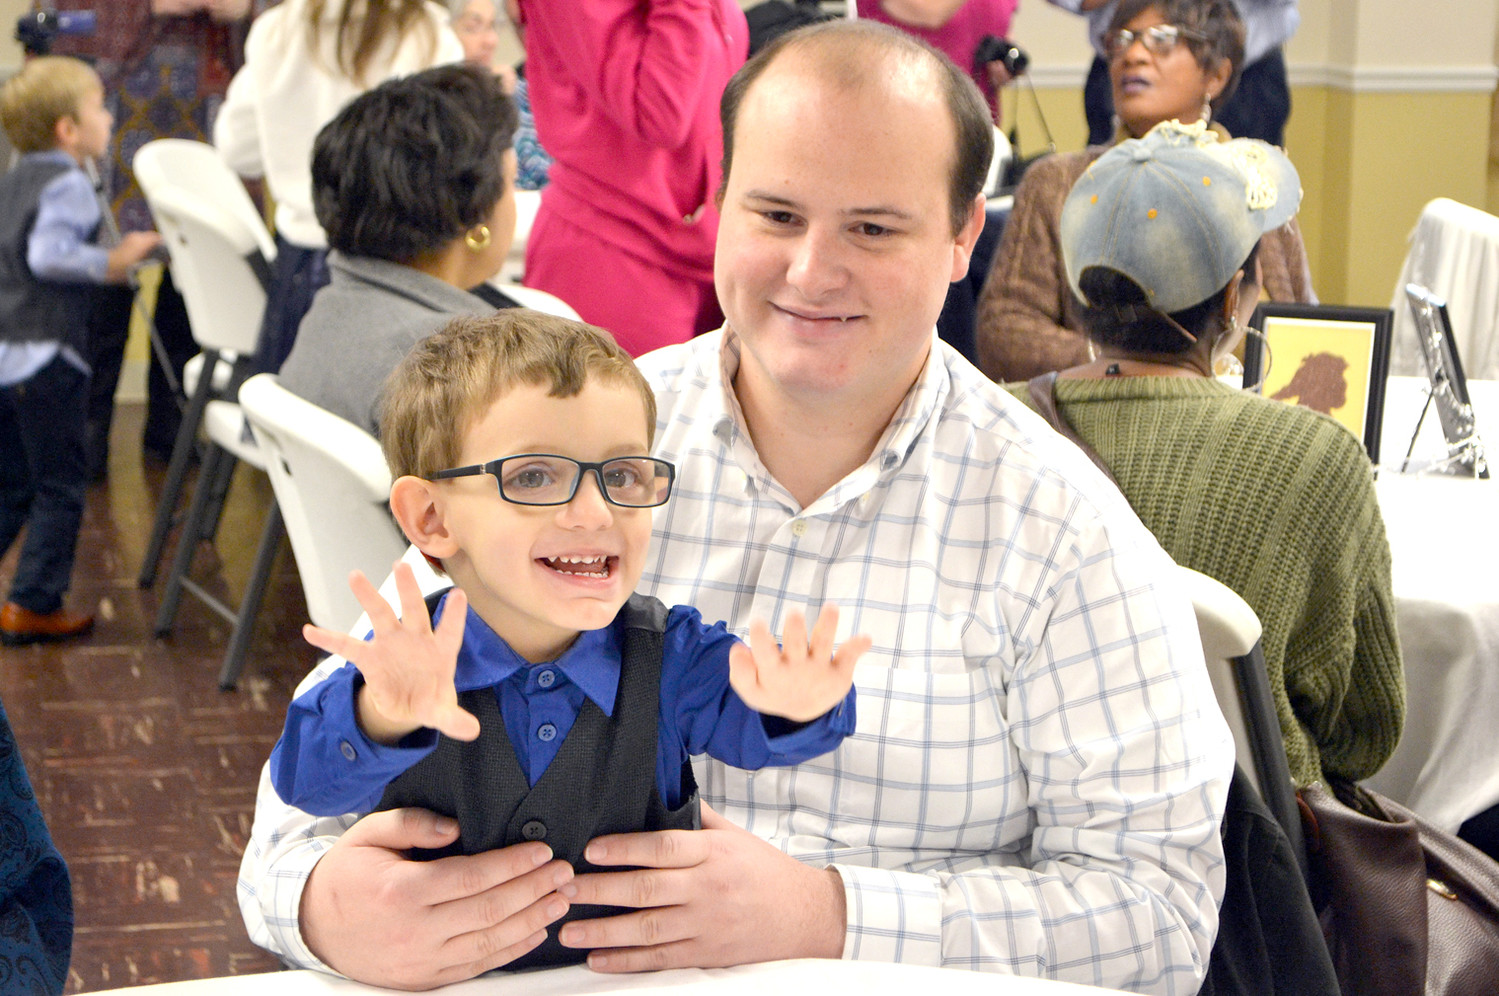 TWO-YEAR-OLD David Inman was adopted during the National Adoption Day ceremonies on Monday. He is sitting in his uncle Christopher's lap as he reaches for his new parents.